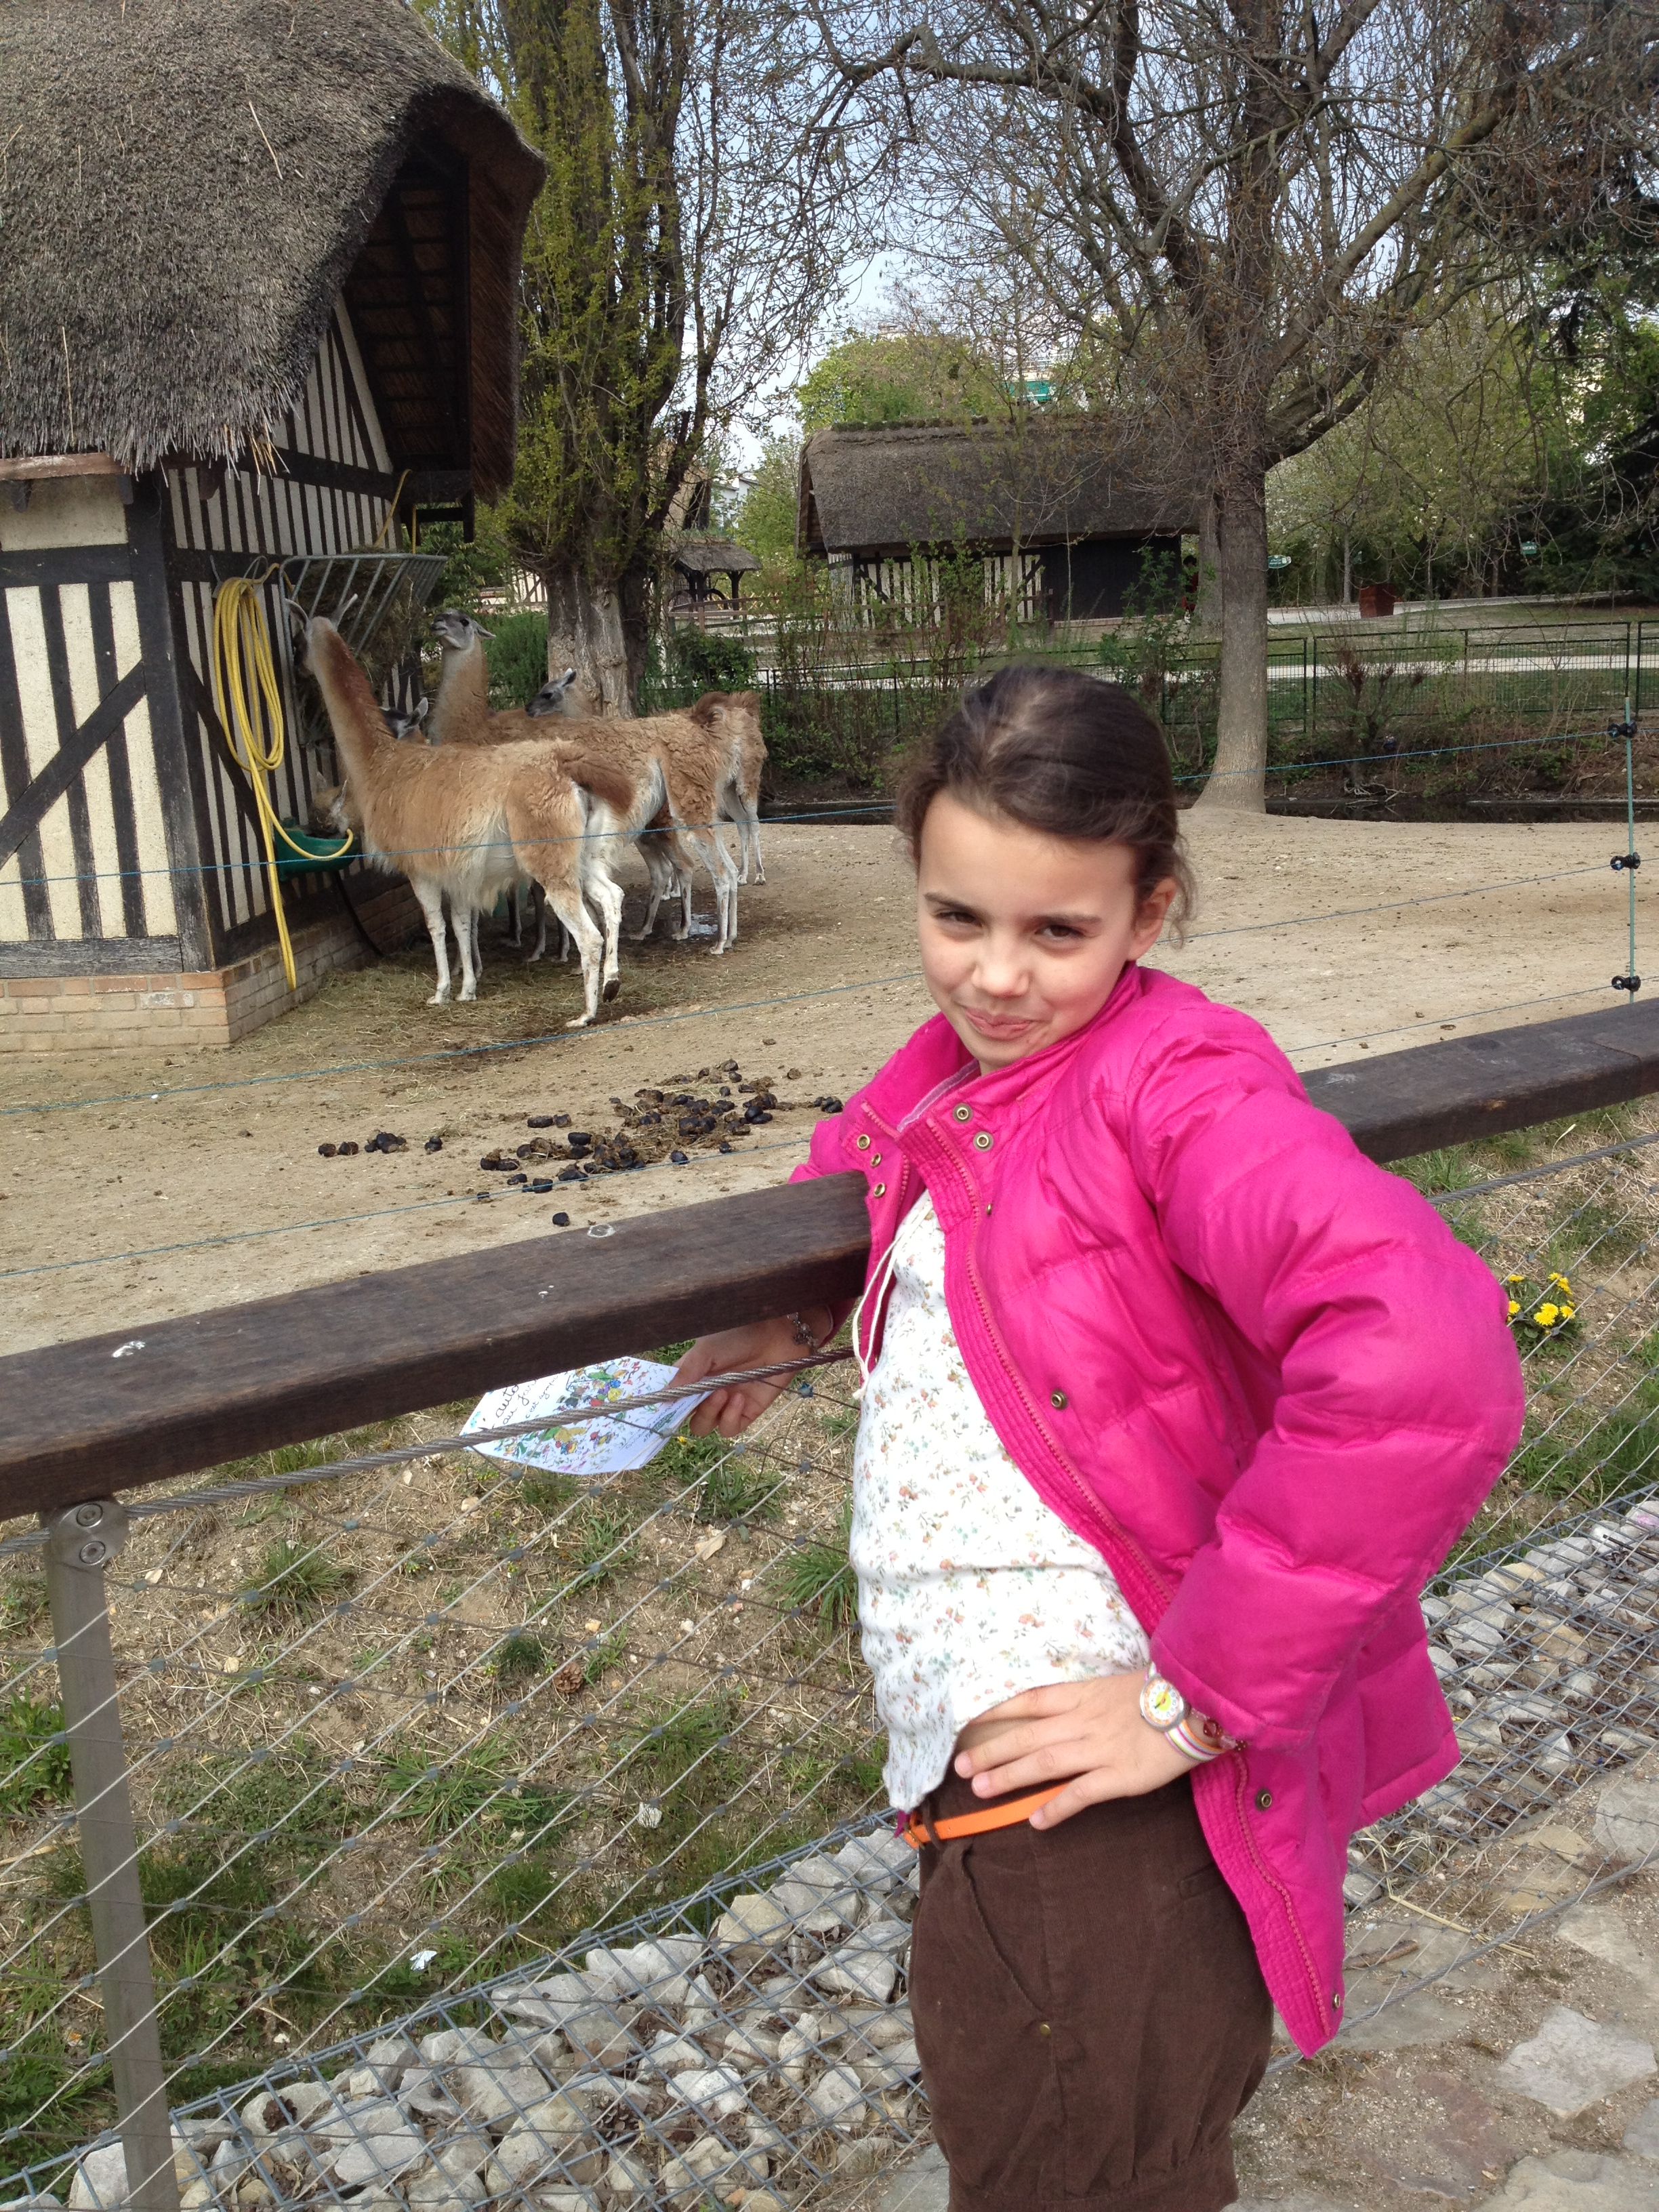 Young girl in front of llama pen in the Jardin d'Acclimatation in Paris